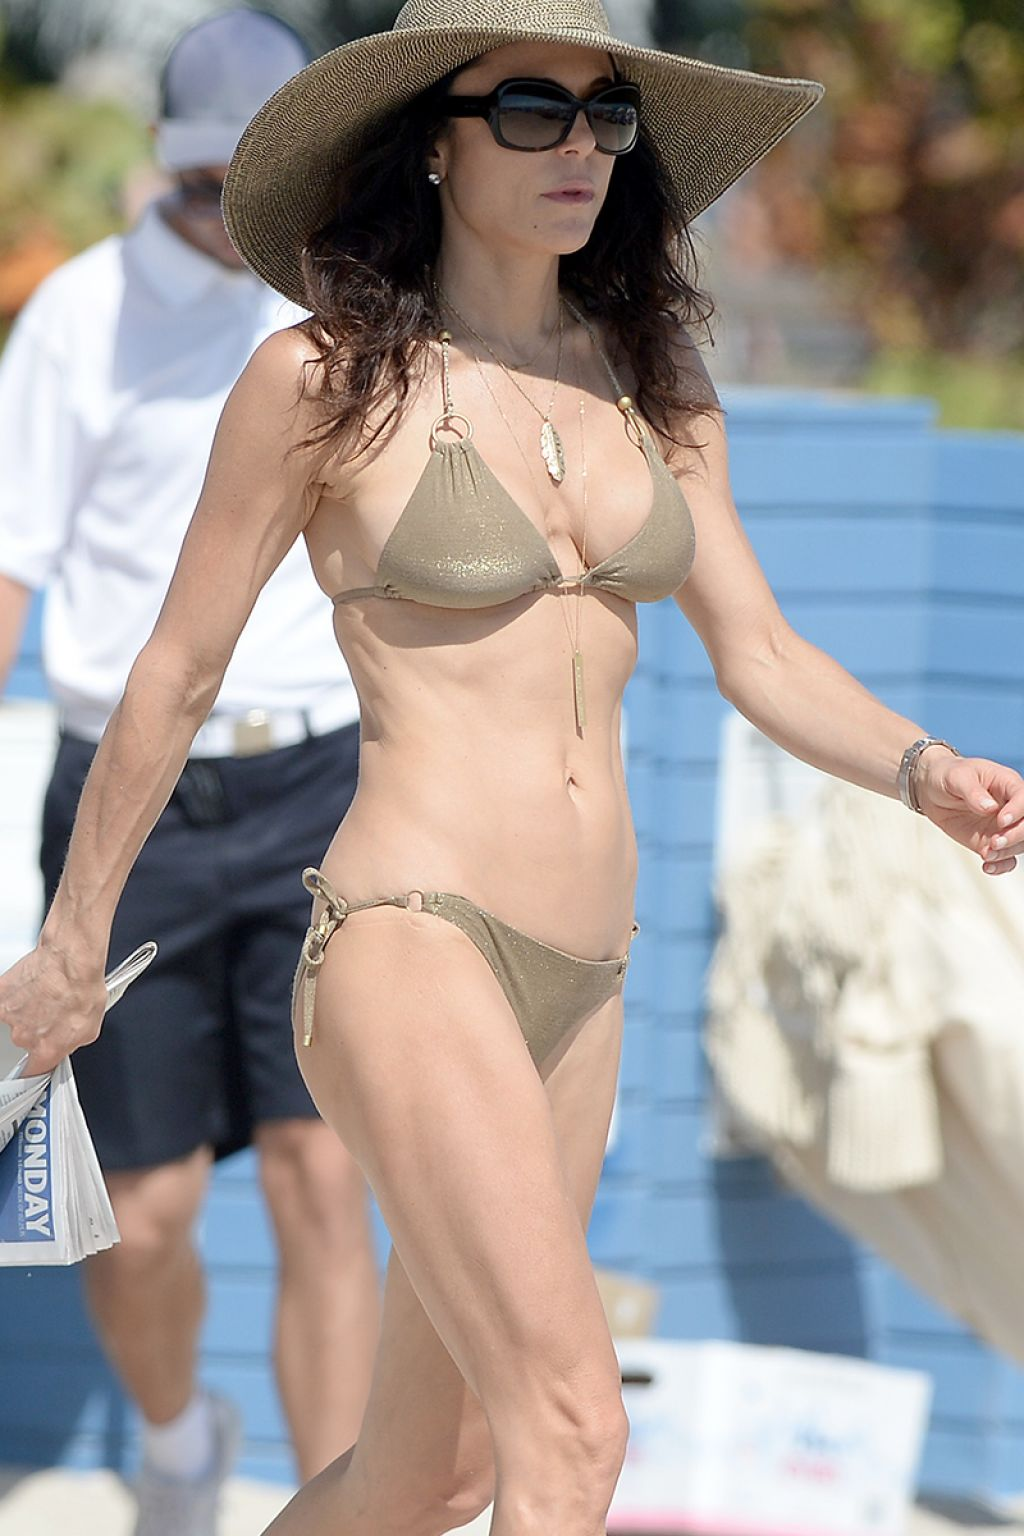 Bethenny Frankel in a Gold String Bikini On The Beach in Miami, Feb. 2015